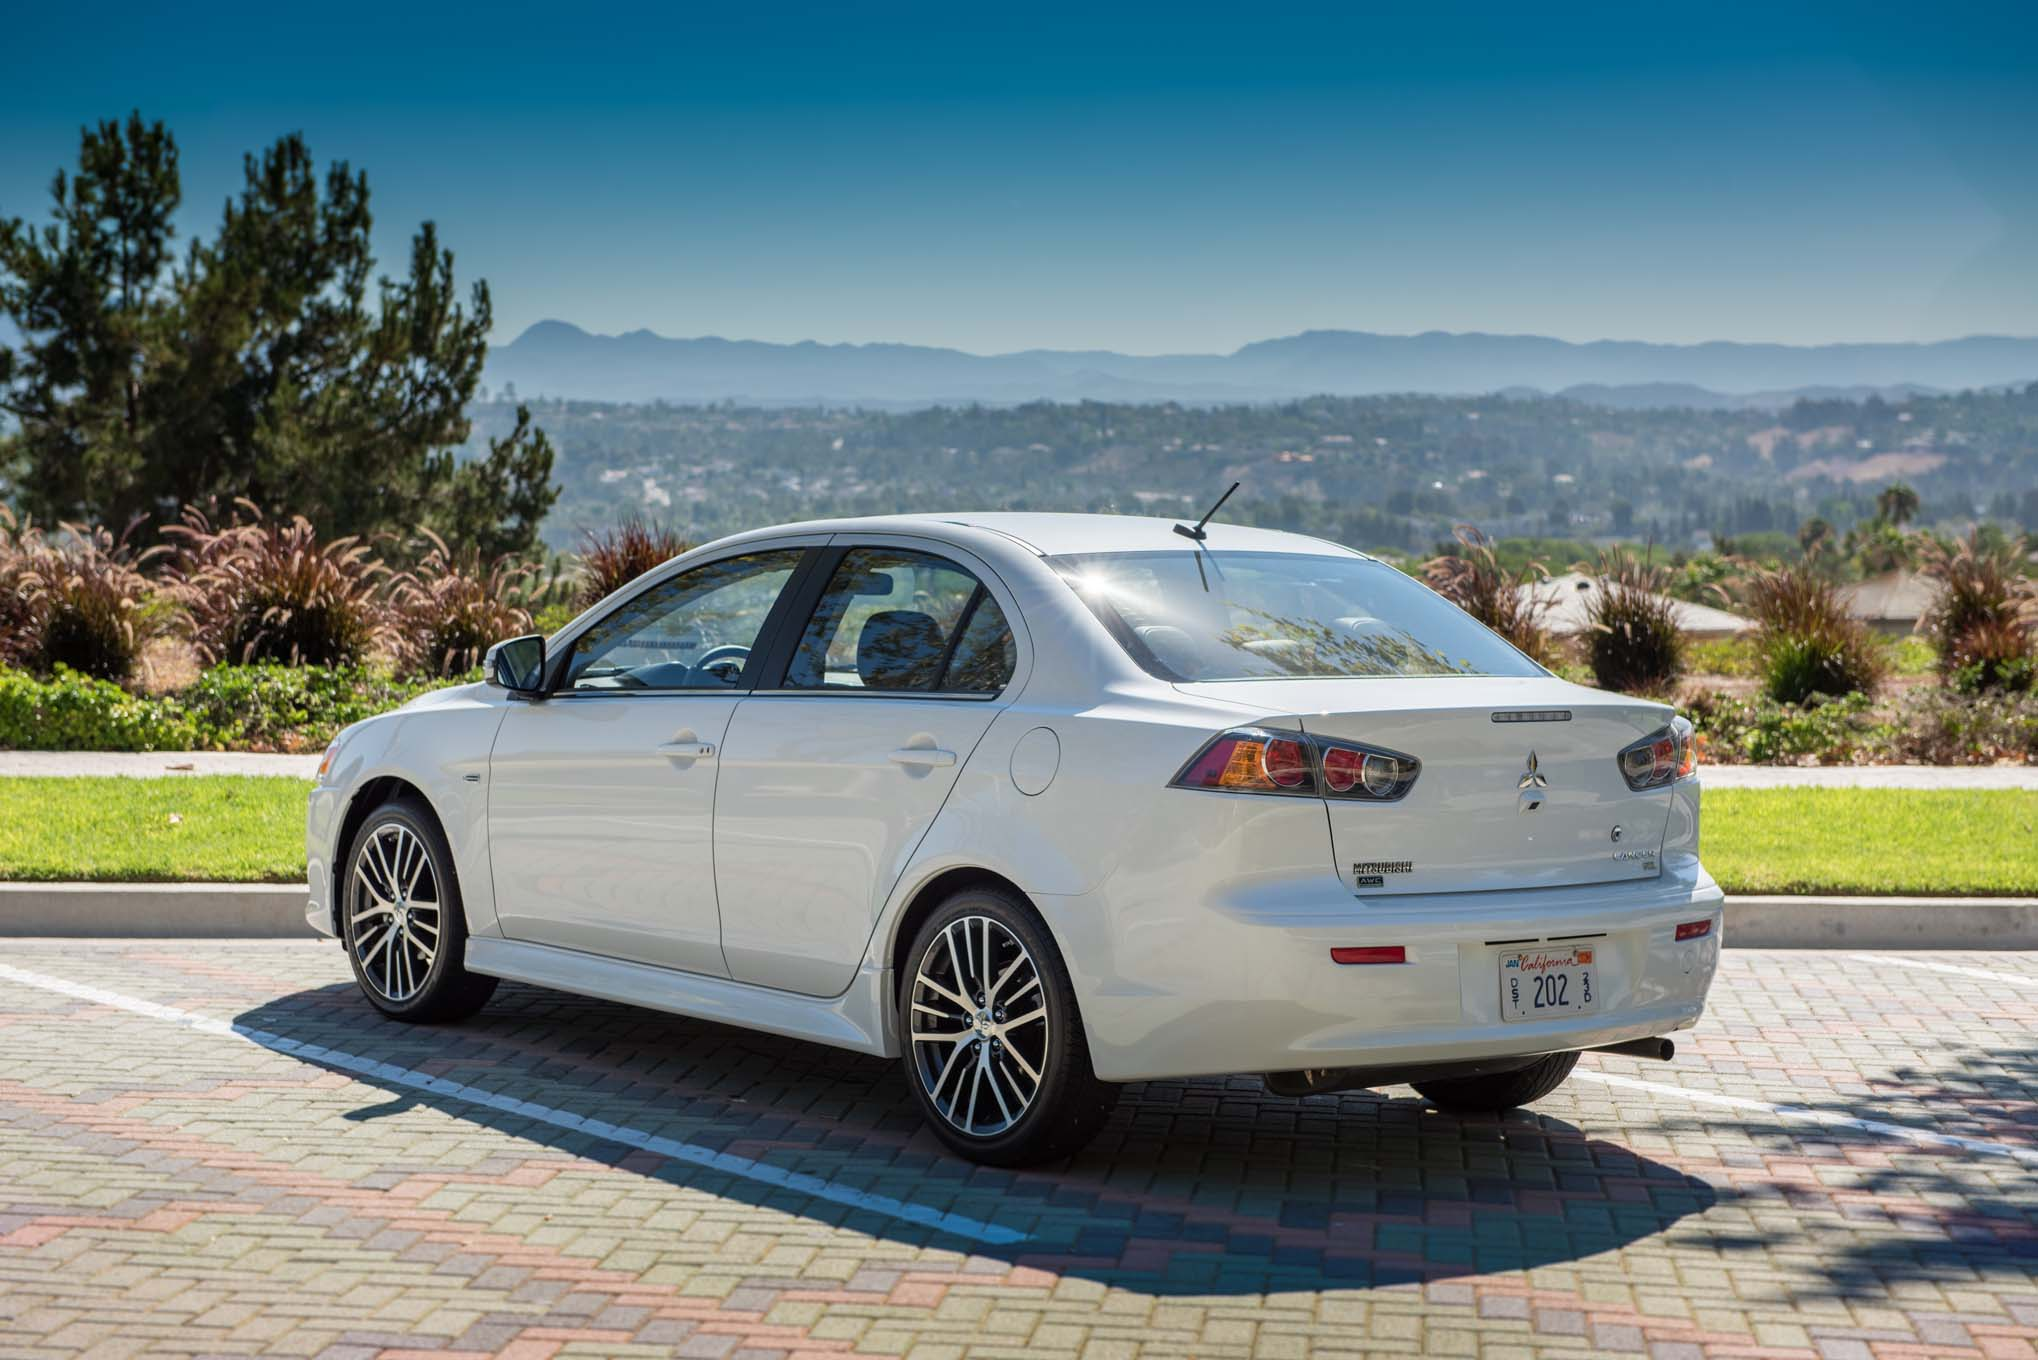 2017 Mitsubishi Lancer Adds Limited Edition Trim